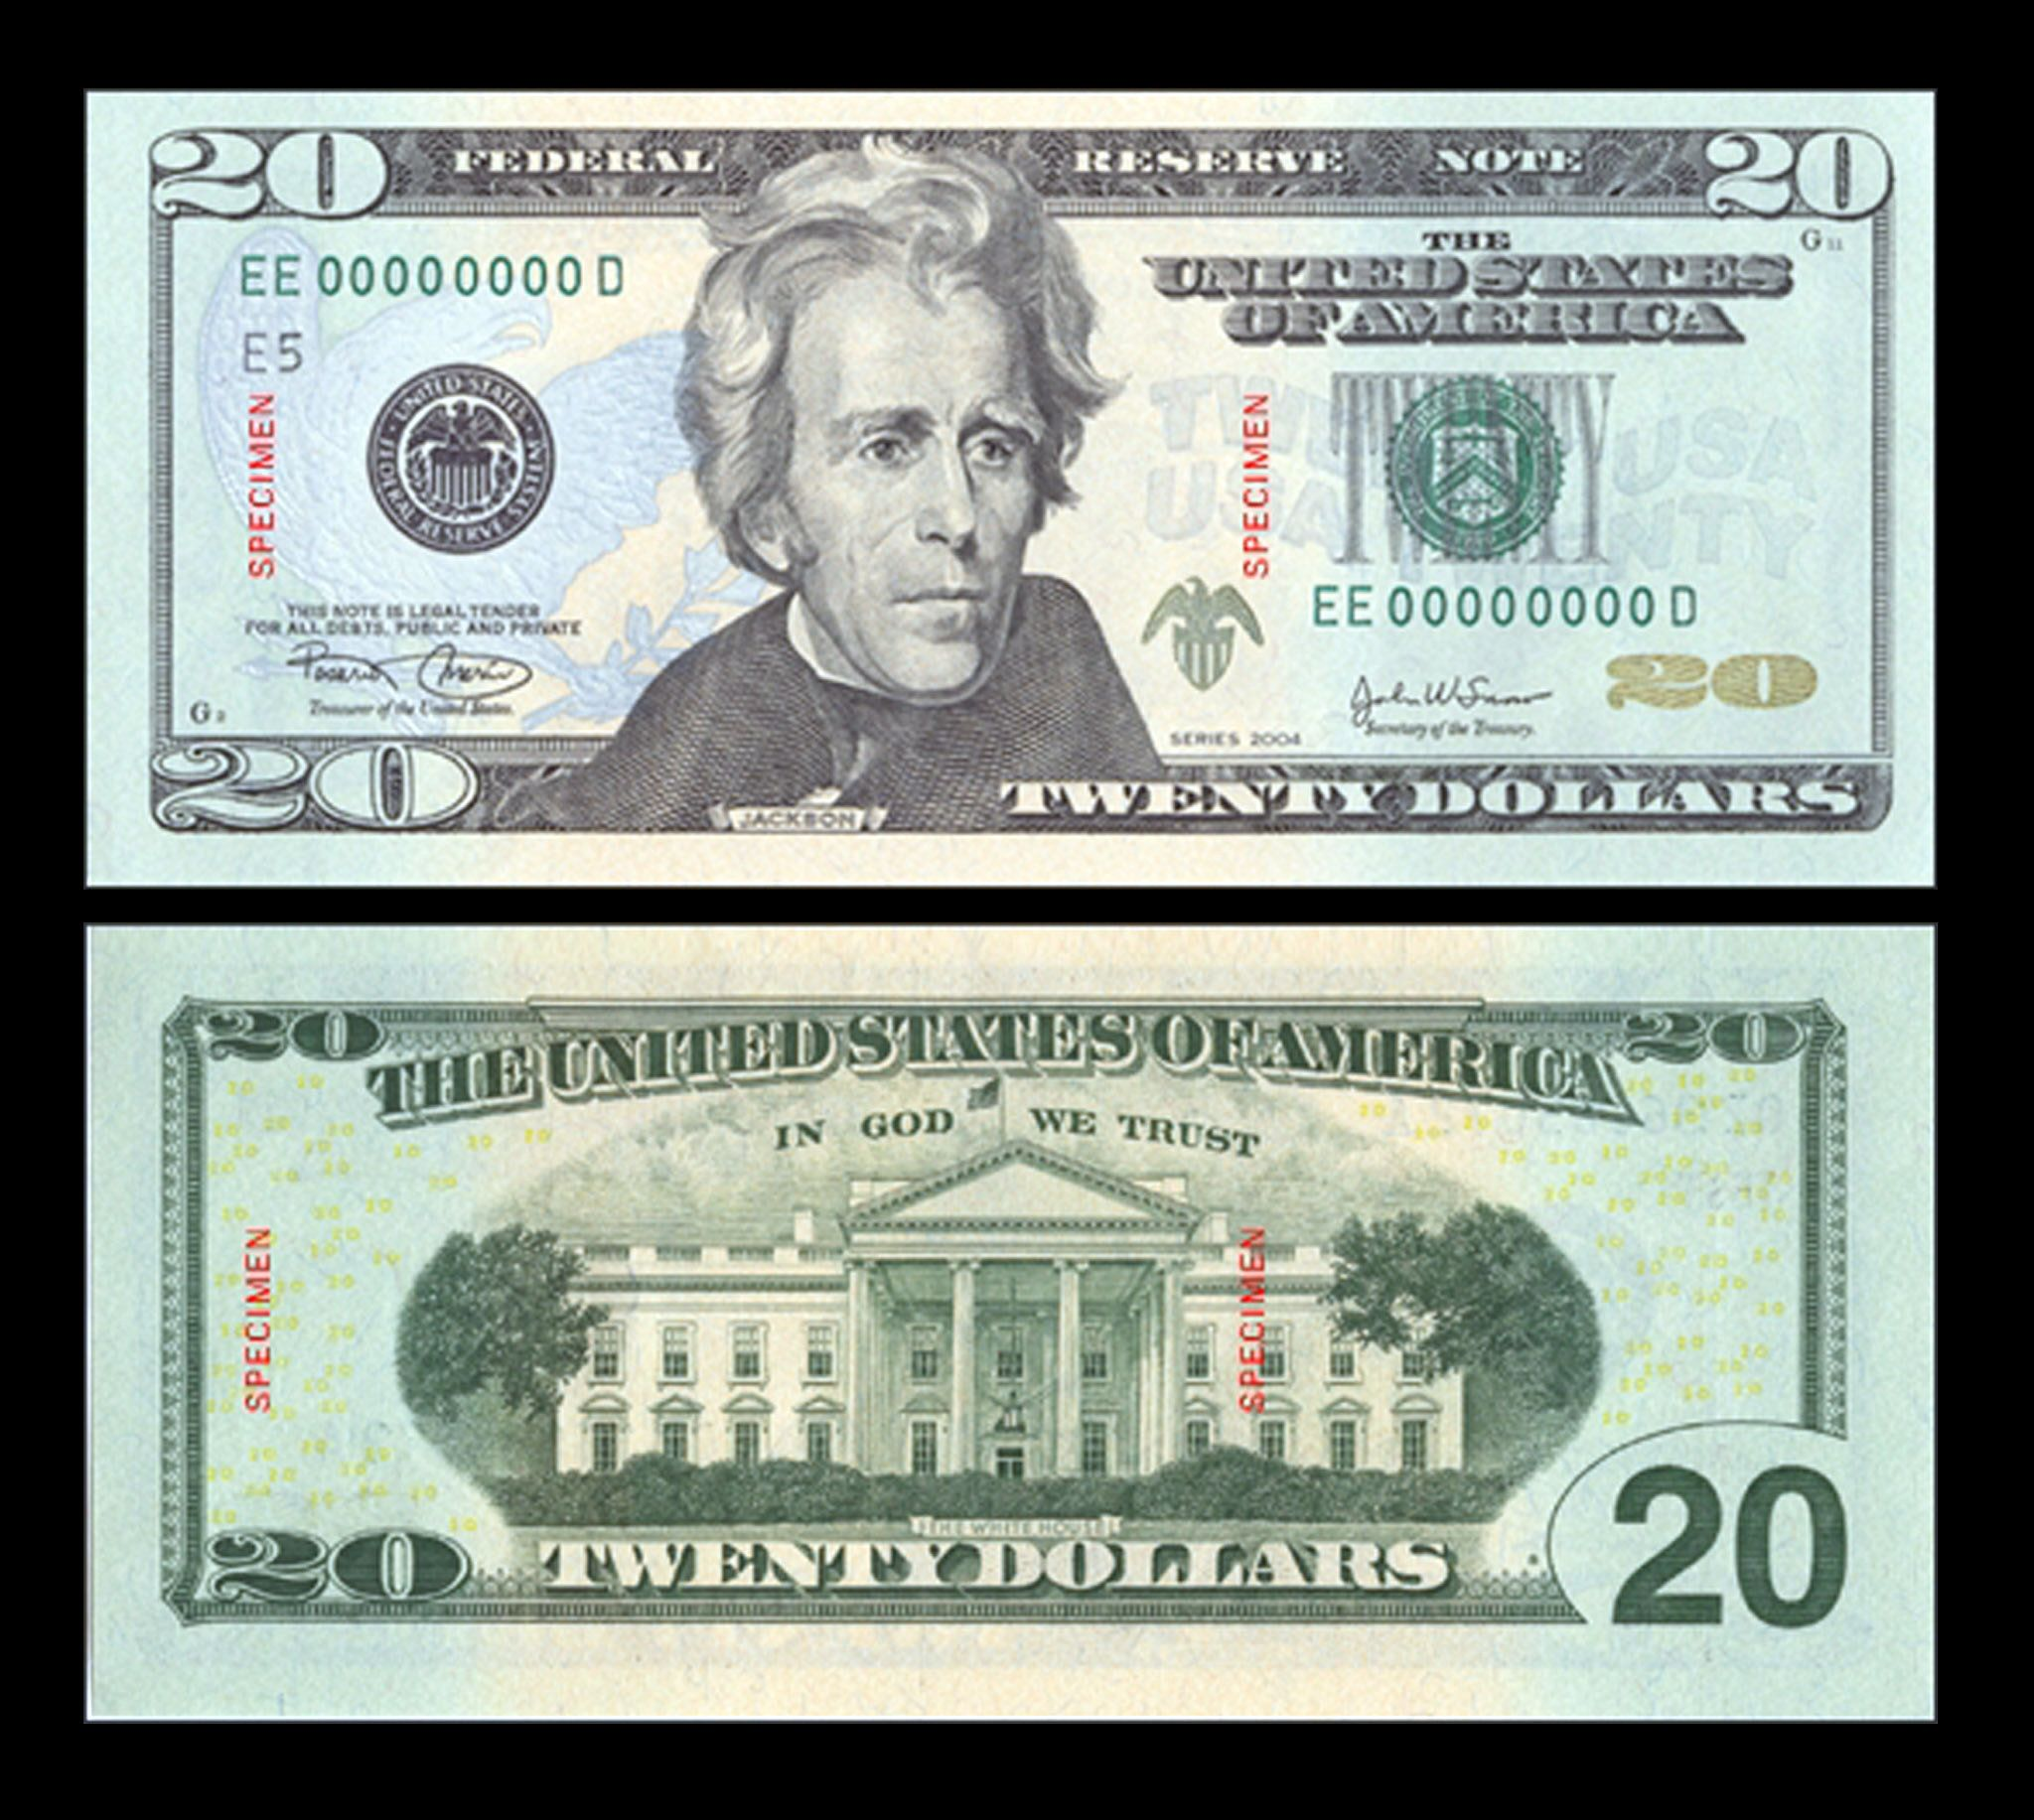 This is the $20 bill as of May 13, 2003.